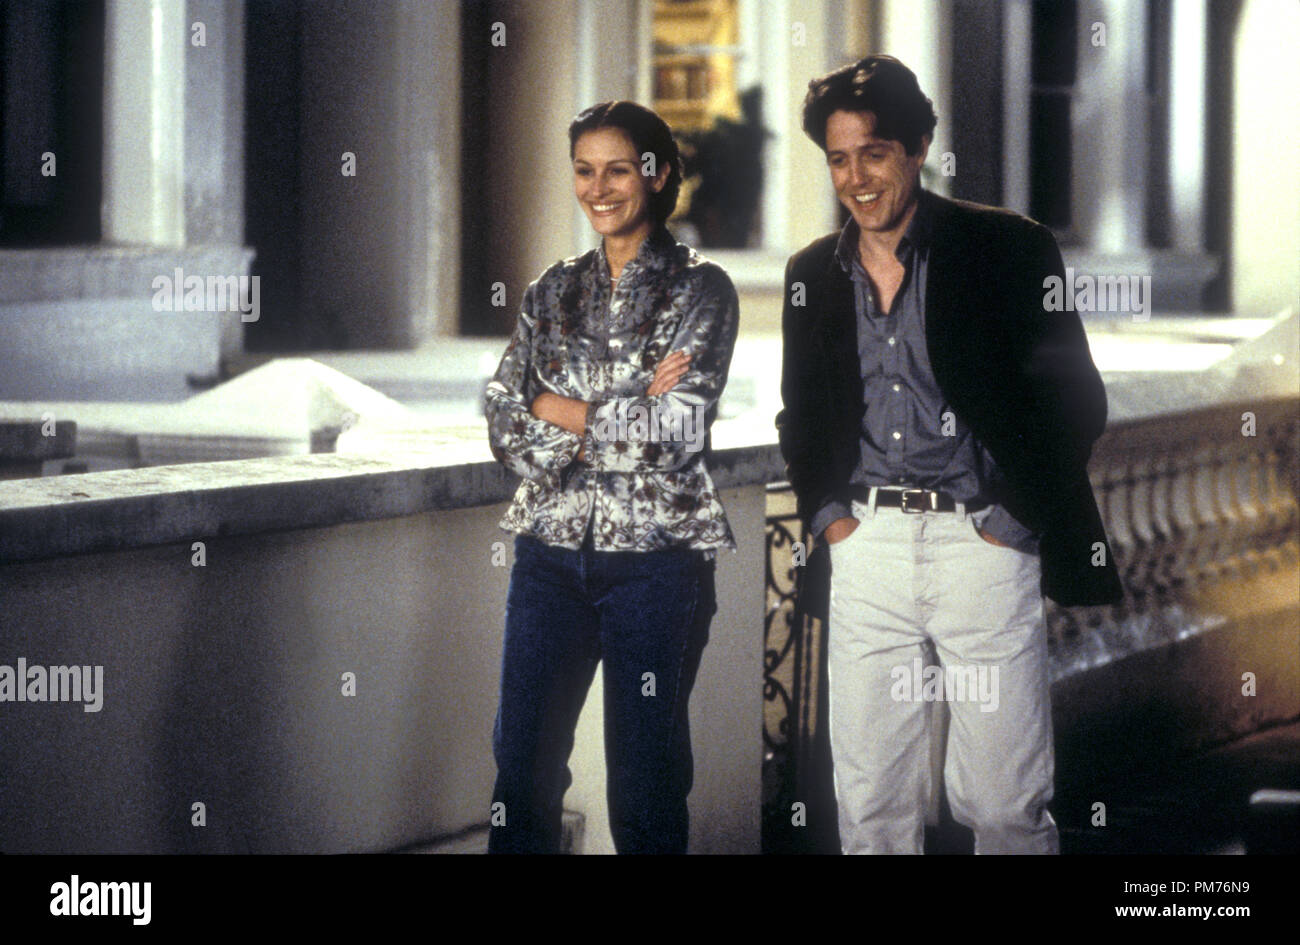 Film Still / Publicity Still from 'Notting Hill' Julia Roberts, Hugh Grant © 1999 Universal Photo Credit: Clive Coote   File Reference # 30973487THA  For Editorial Use Only -  All Rights Reserved - Stock Image